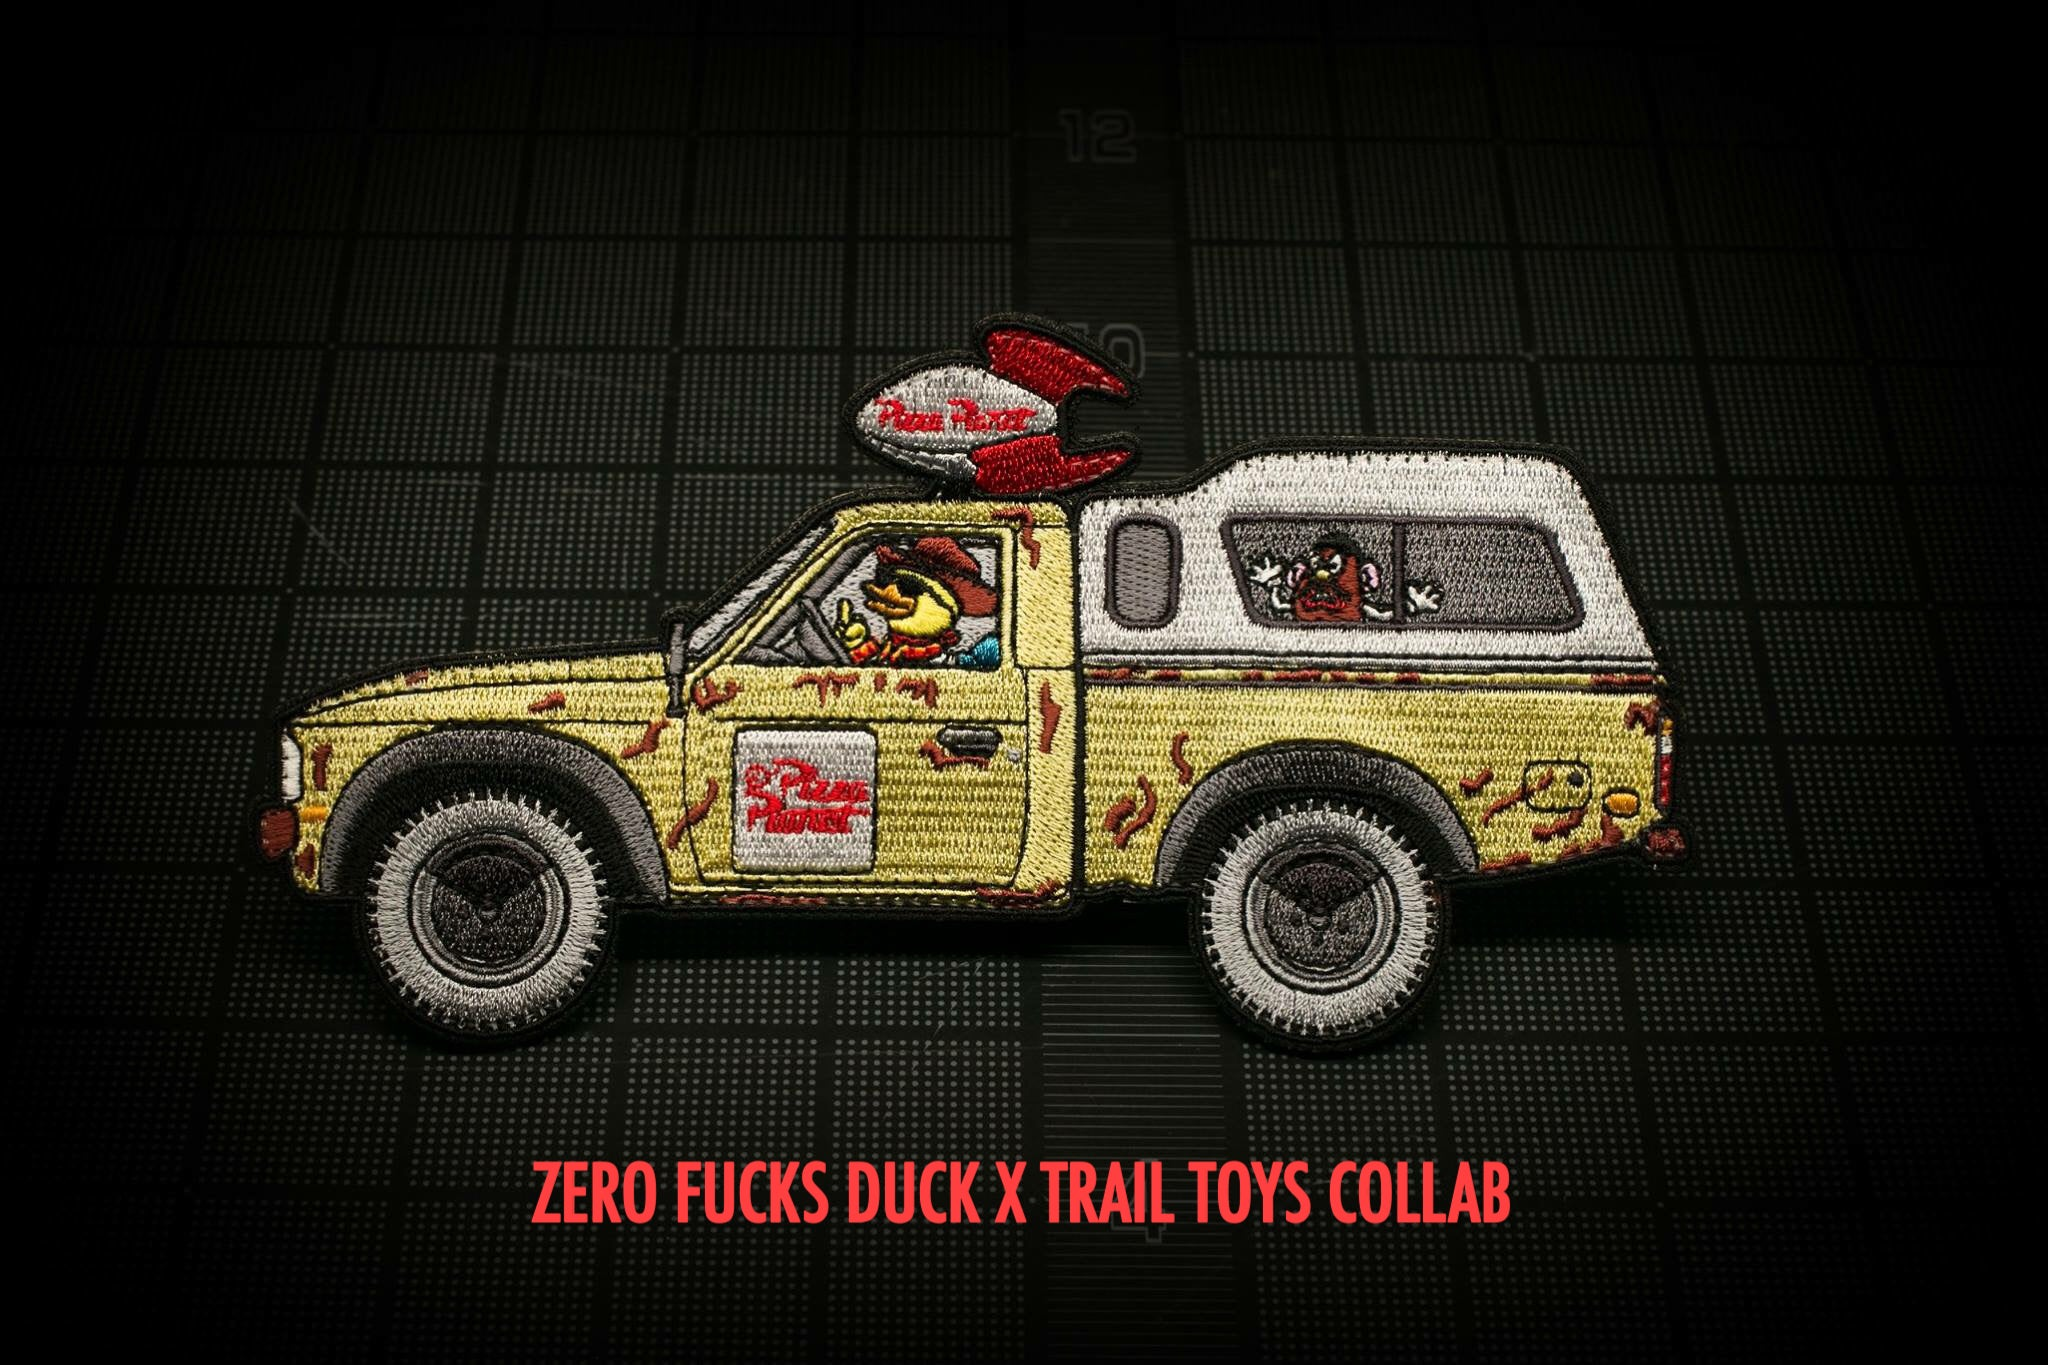 ZERO FUCKS DUCK x TRAIL TOYS PIZZA PLANET MORALE PATCH COLLAB